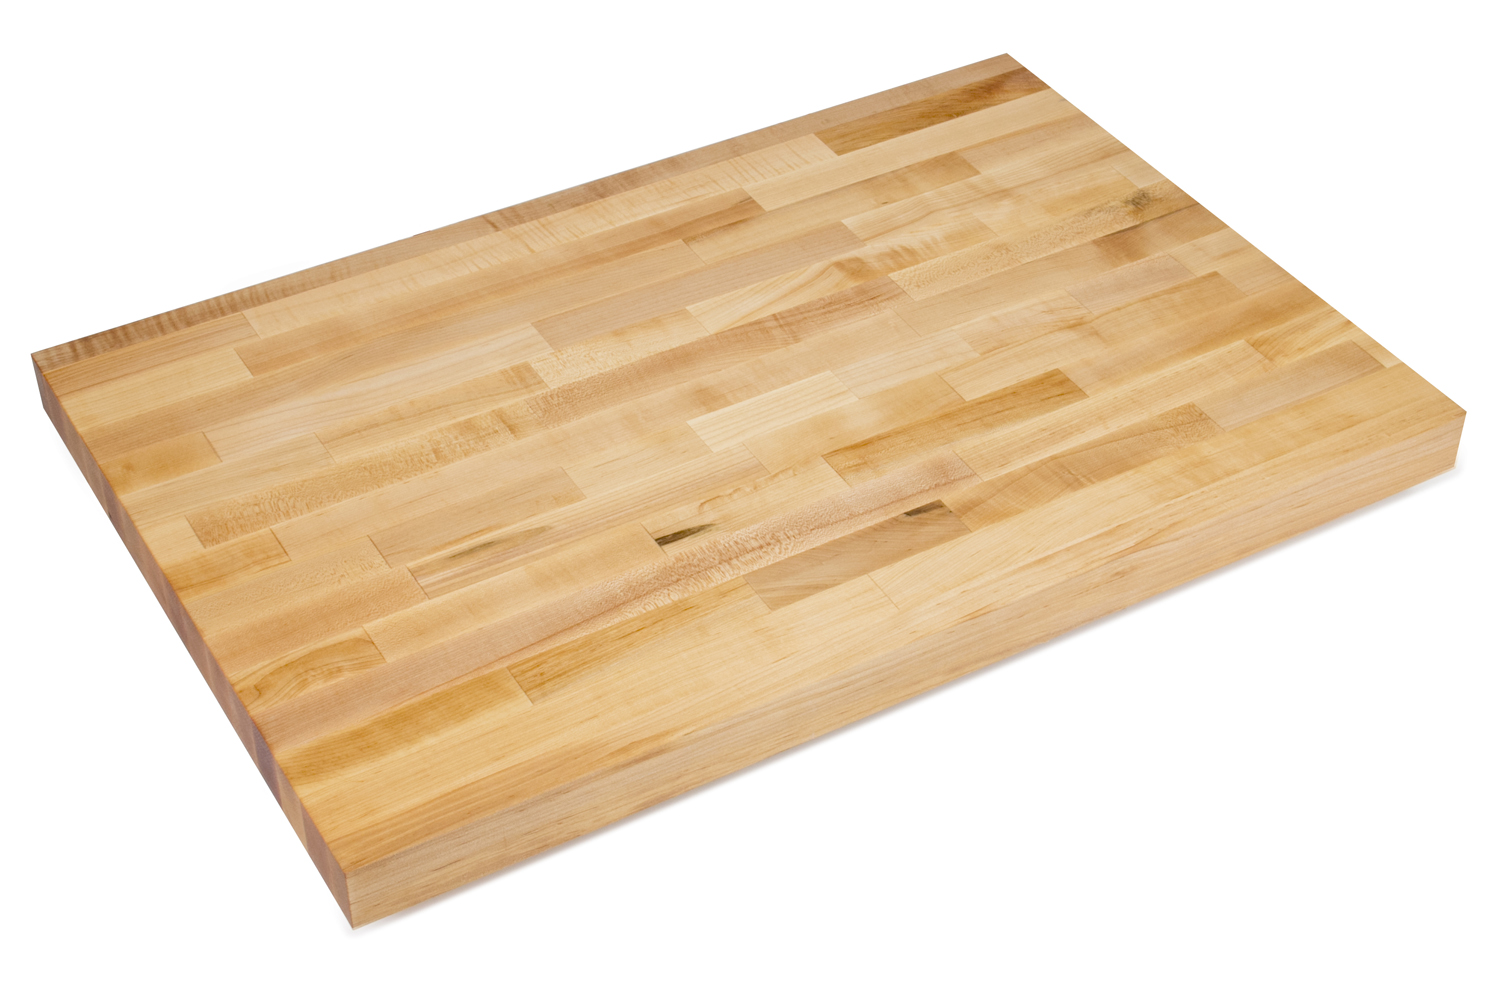 24 inch wide commercial maple butcher block countertops